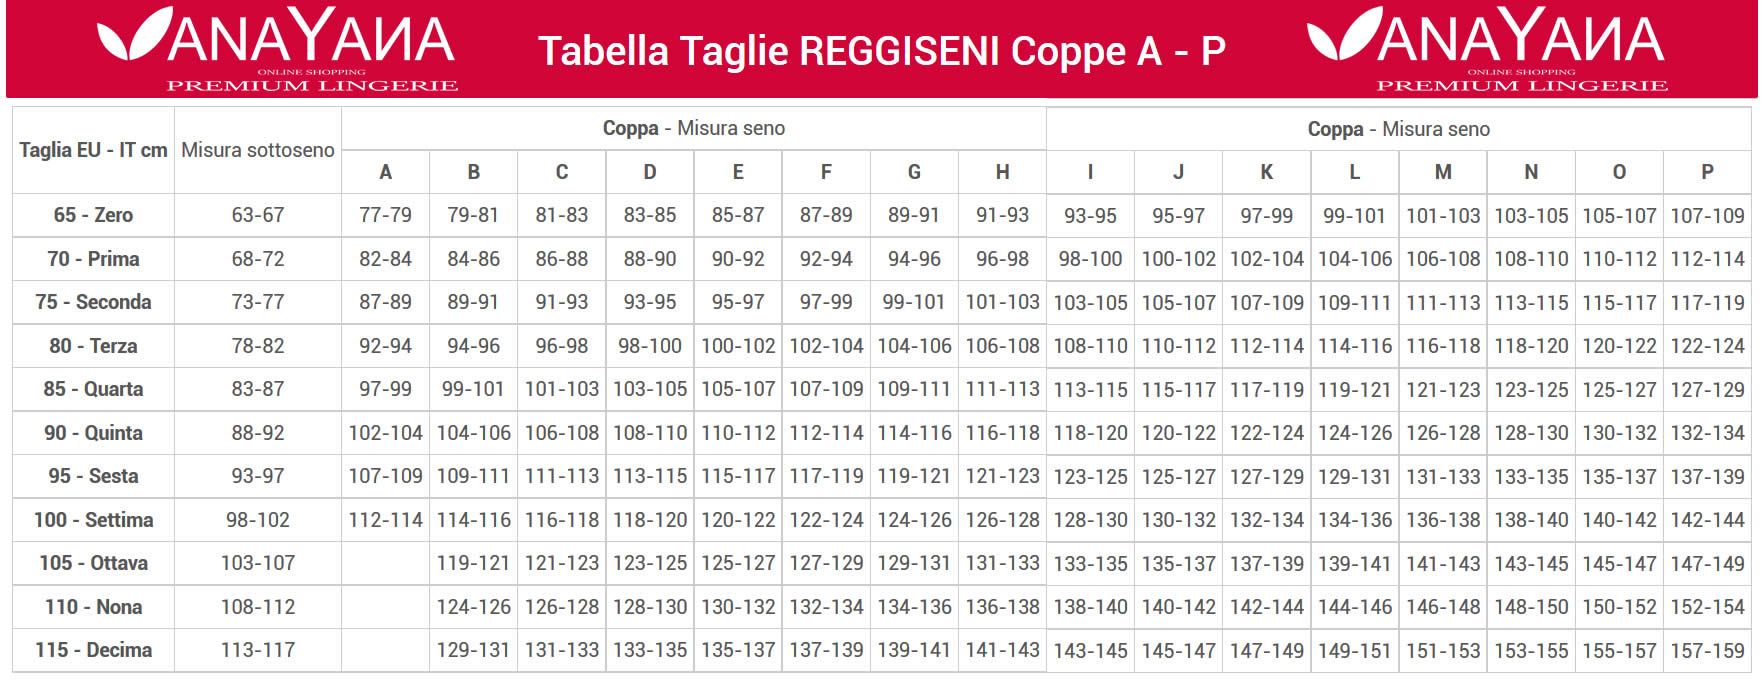 Tabella taglie Coppe differenziate